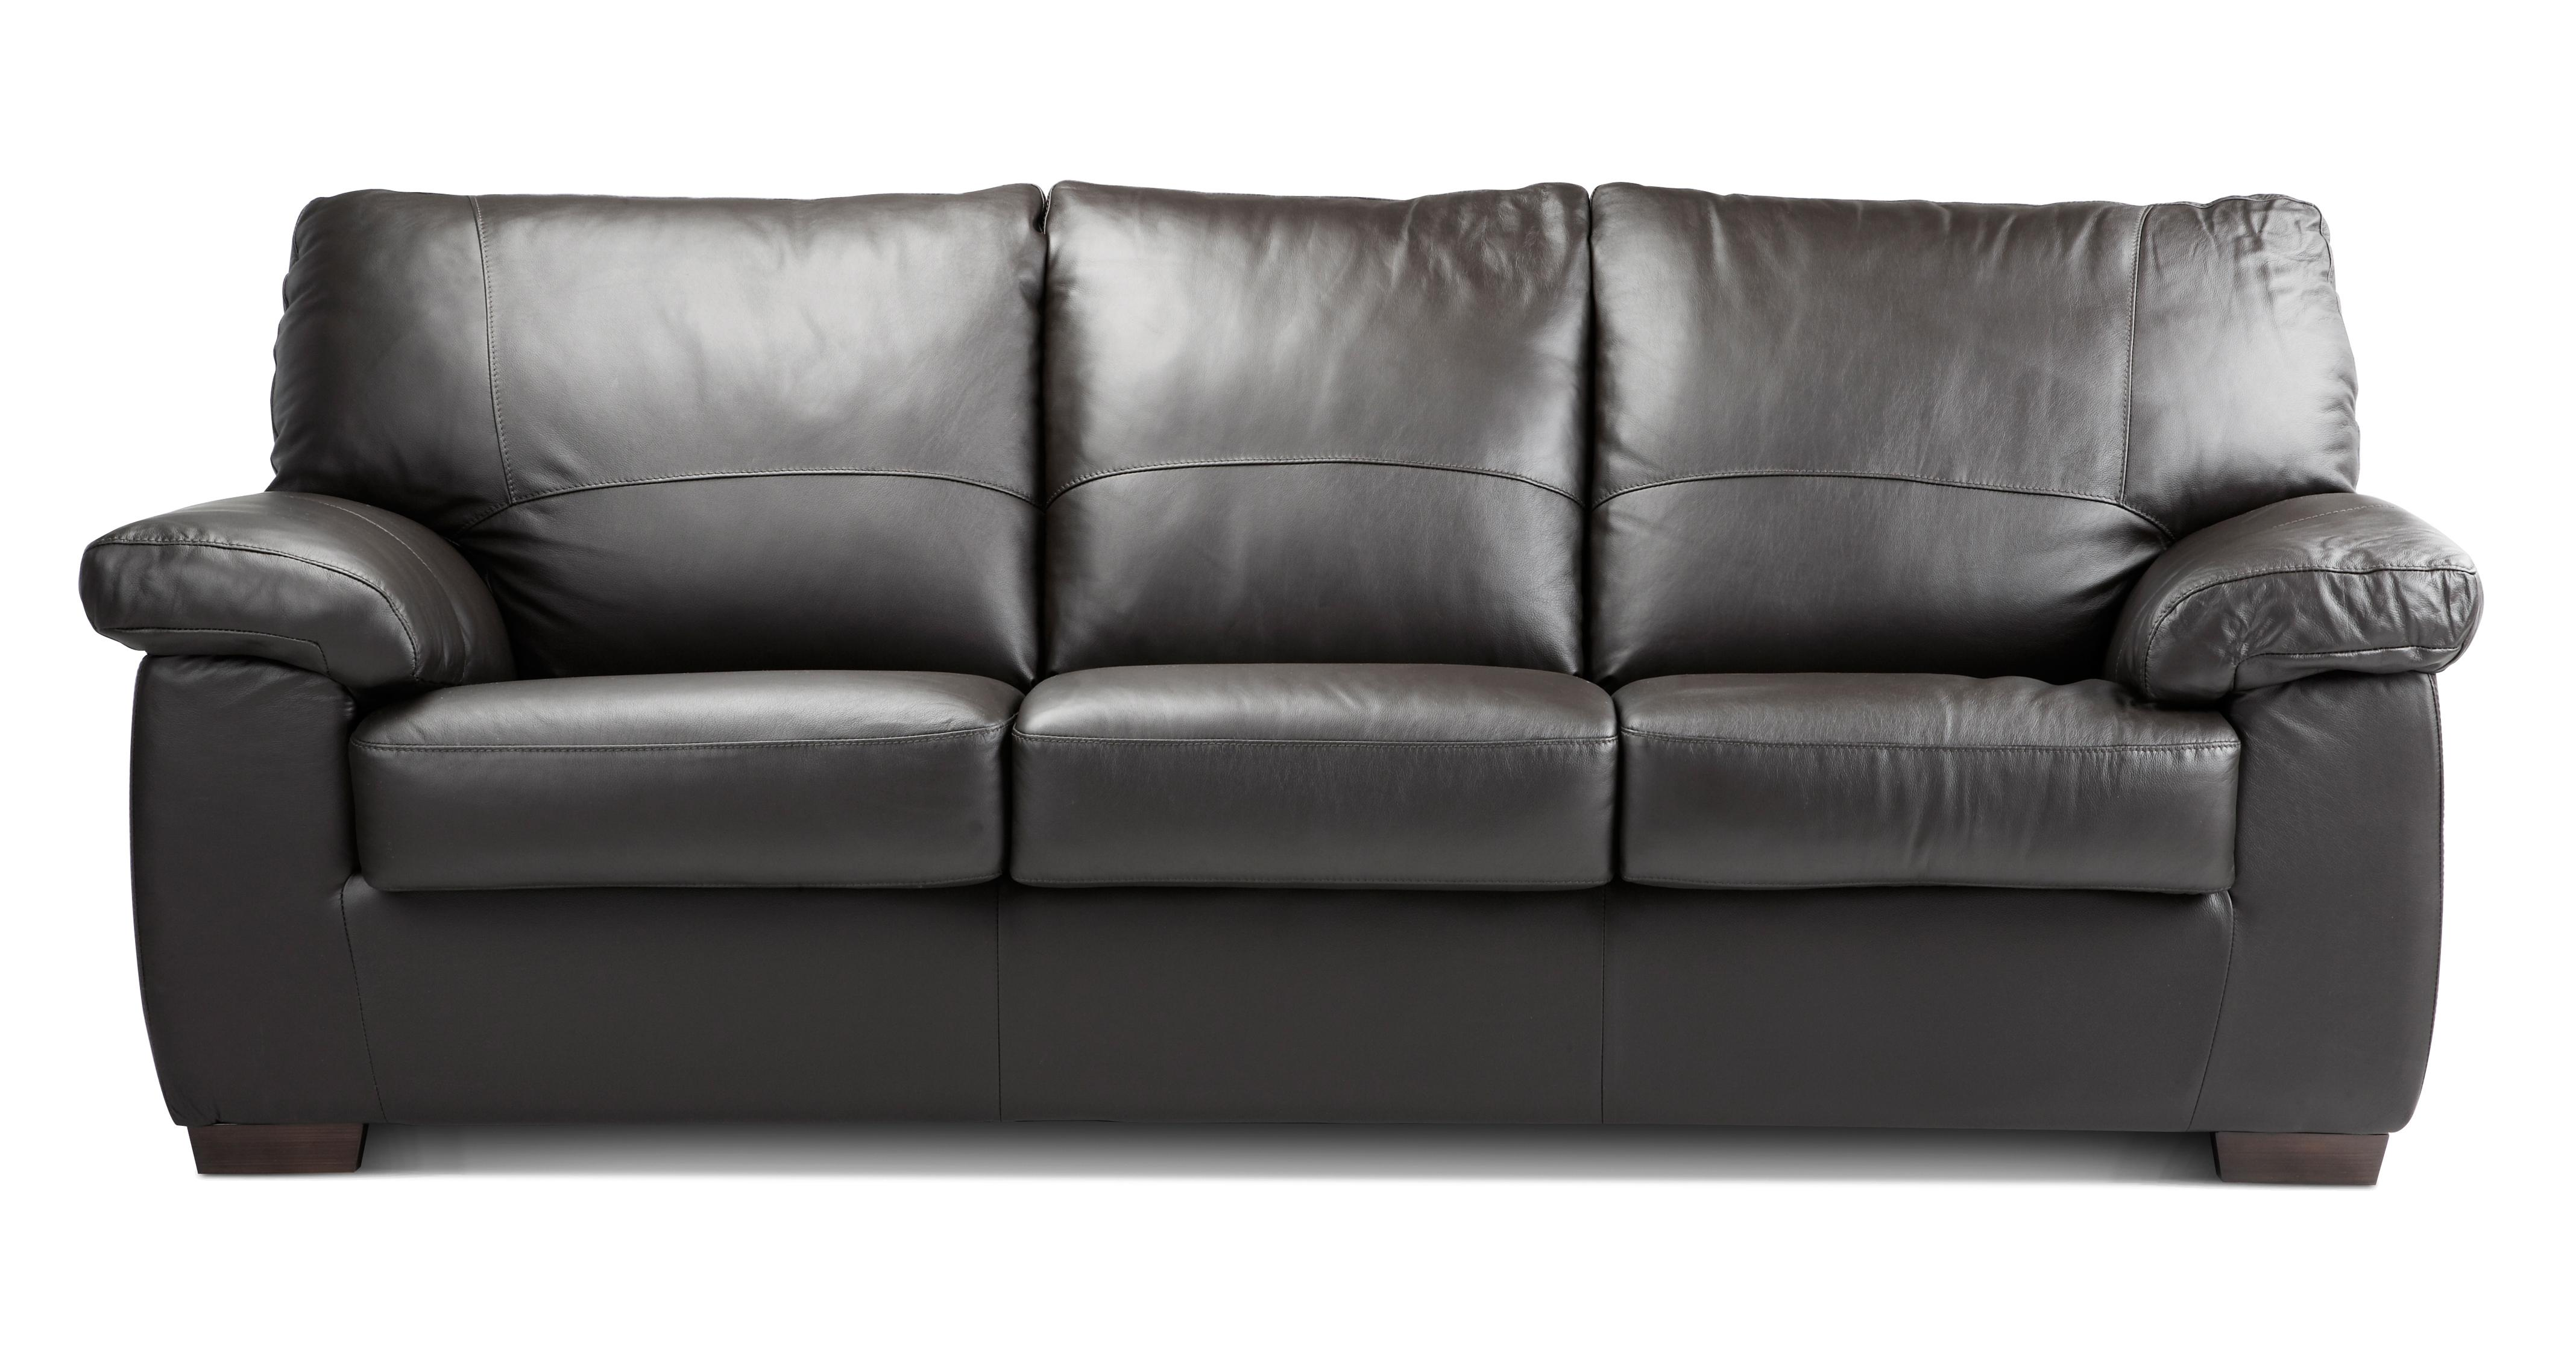 Pavilion Leather and Leather Look 3 Seater Deluxe Sofa Bed